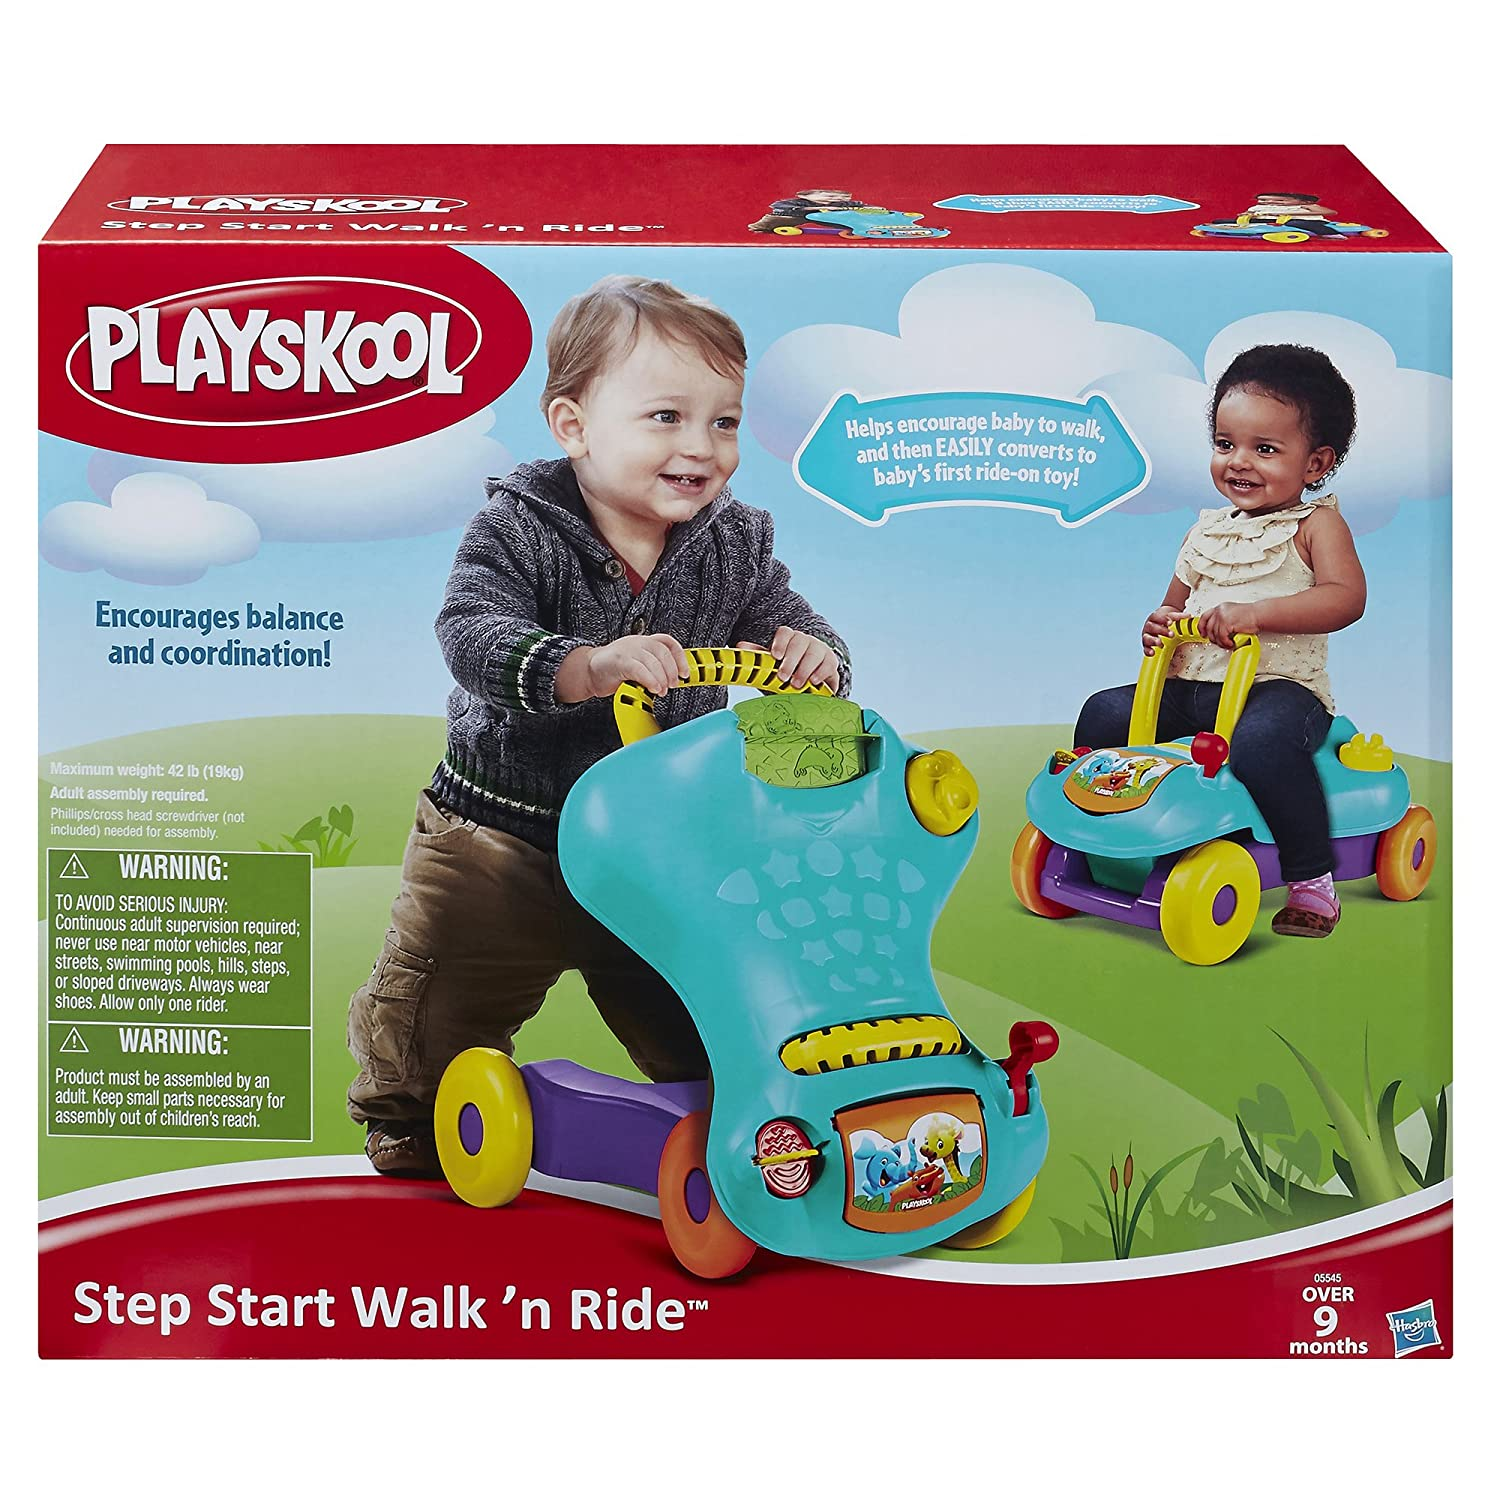 Playskool Step Start Walk n Ride Playskool Amazon Toys & Games